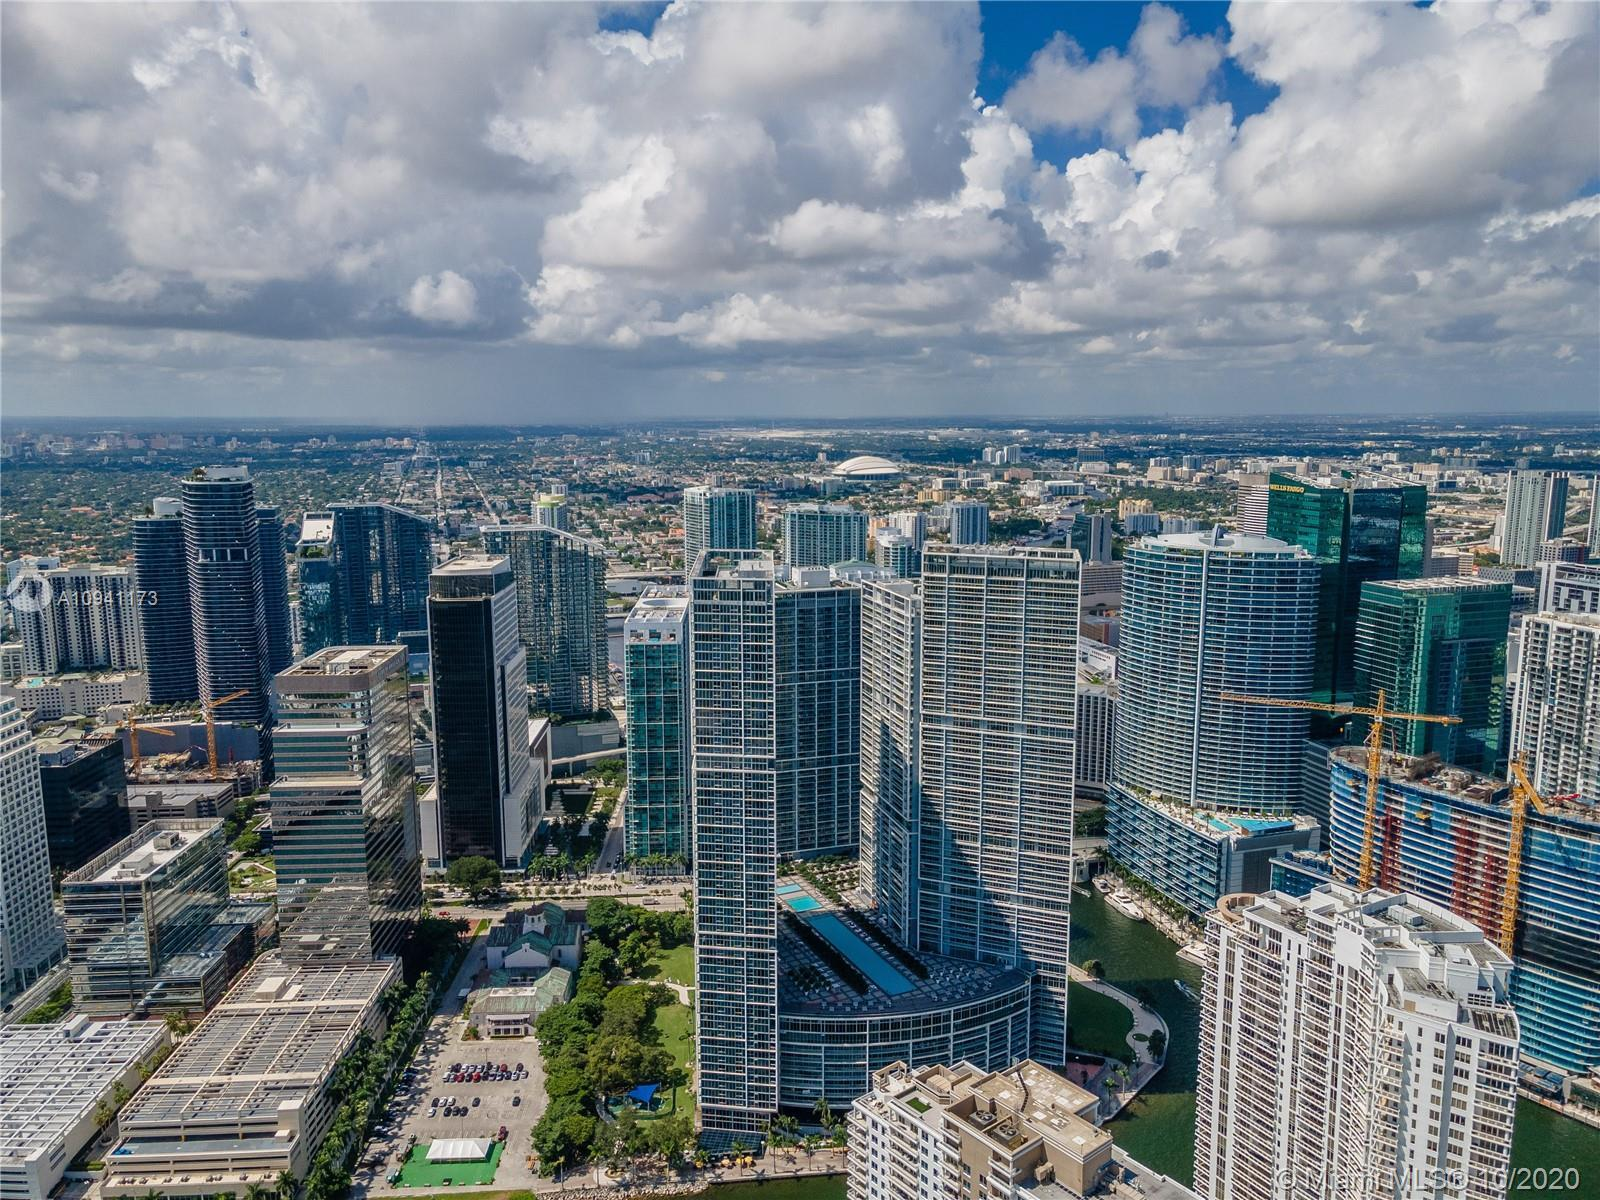 The Icon Brickell complex is an urban development center in Miami, Florida. It is located on the sou